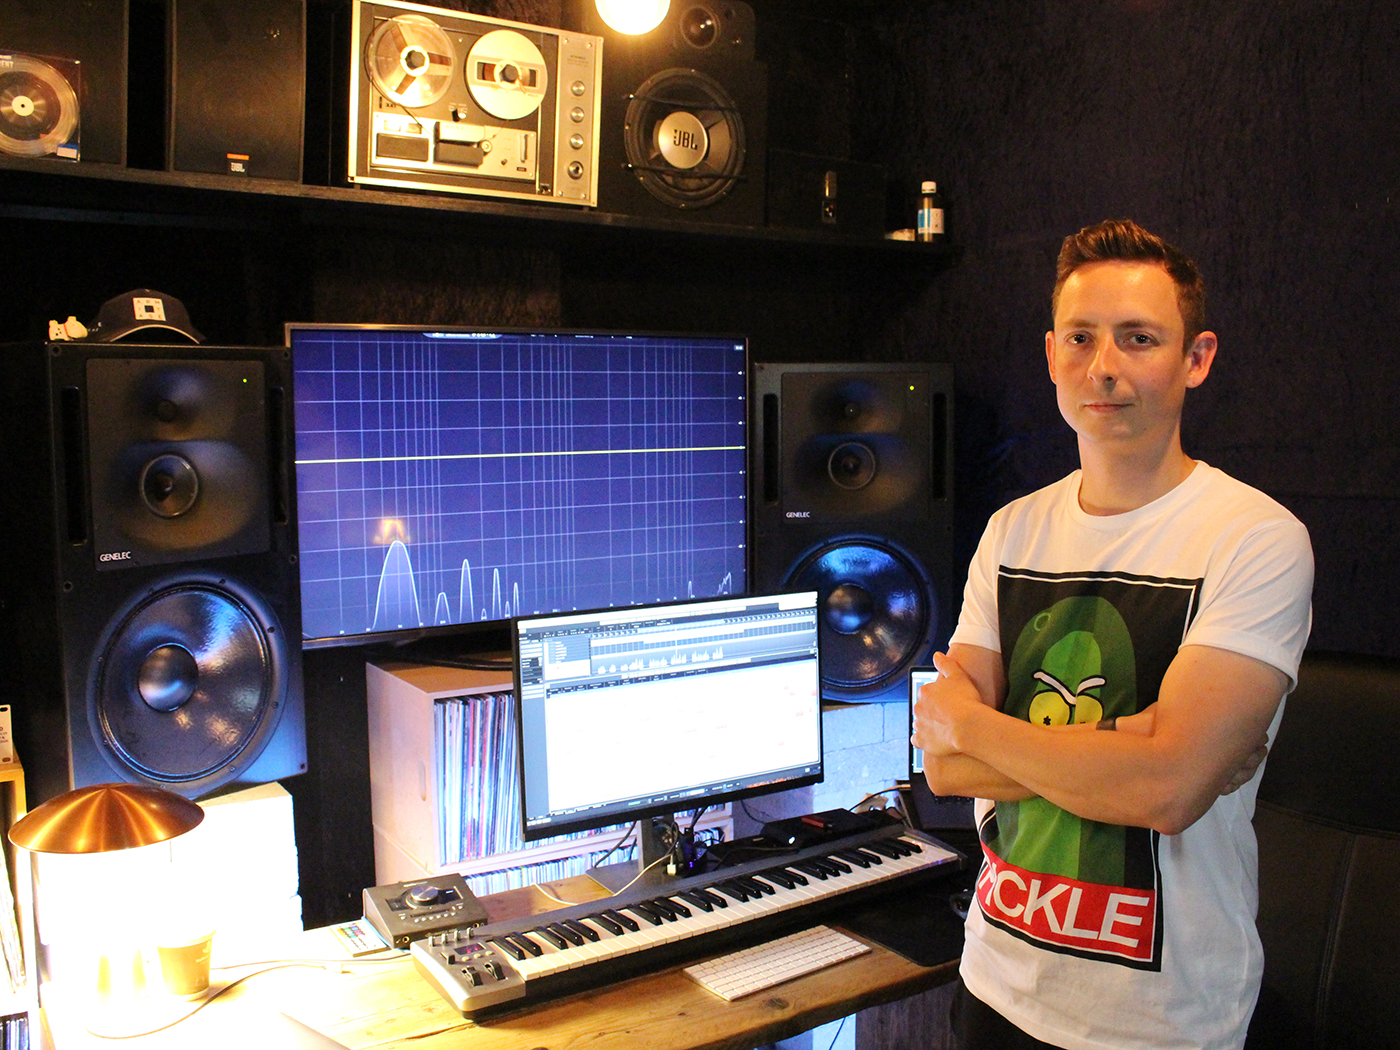 James Hurr shares some pro secrets on crafting the perfect mix for a dance floor anthem